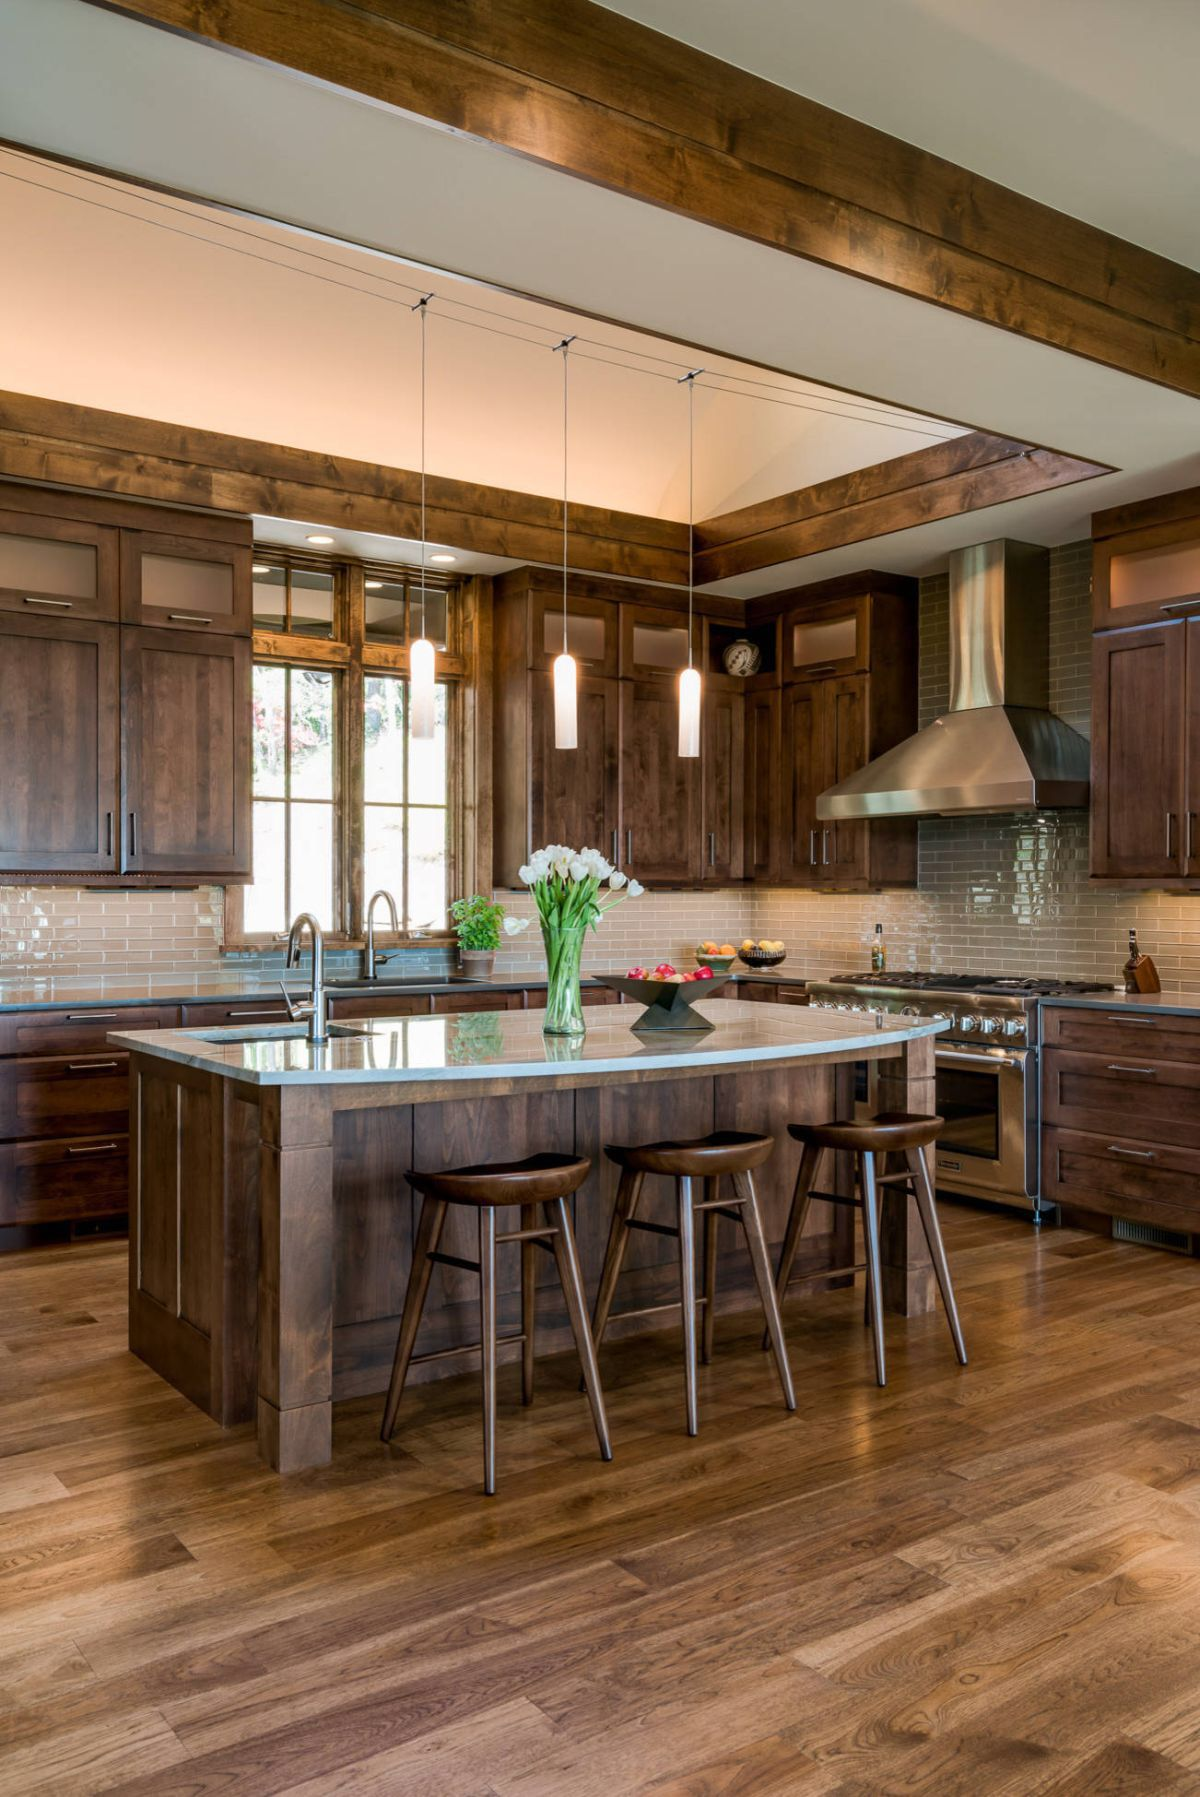 Color Of Cabinets Is Perfect With These Wood Floors Rustic Farmhouse Kitchen Tuscan Kitchen Rustic Kitchen